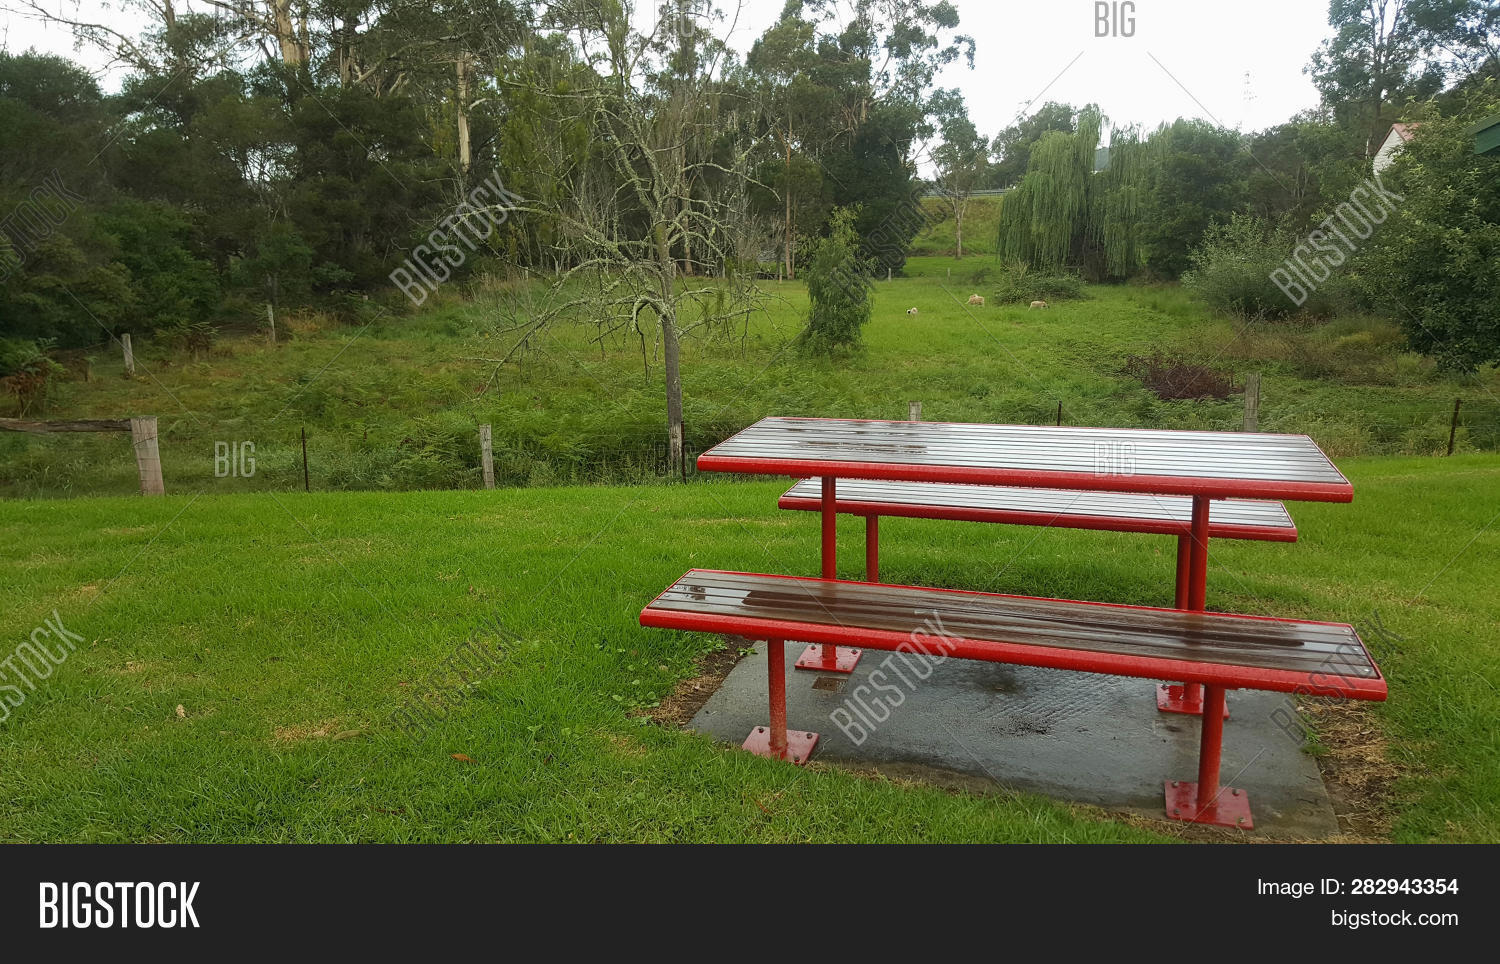 Fine Table Bench Seat Red Image Photo Free Trial Bigstock Gmtry Best Dining Table And Chair Ideas Images Gmtryco